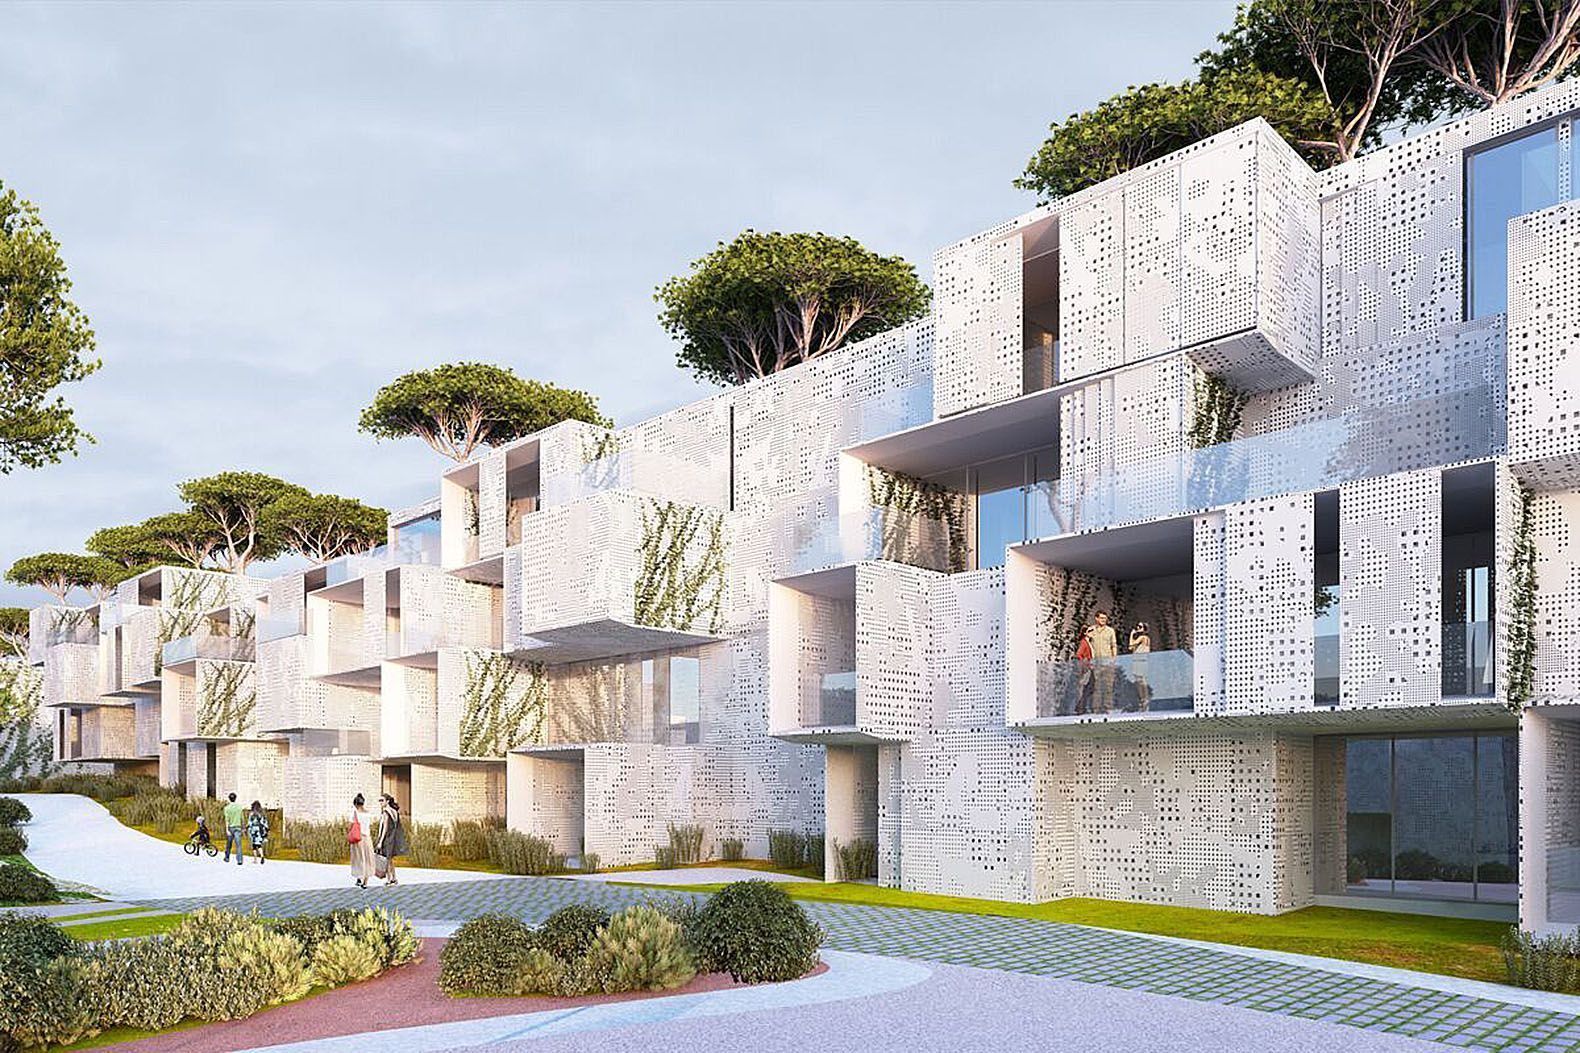 Incroyable Spectacular Green Roofed Modular Tangier Bay Housing Offers Enviable Views  Of The Atlantic Malka Architecture Tangier Bay Housing U2013 Inhabitat   Green  Design ...